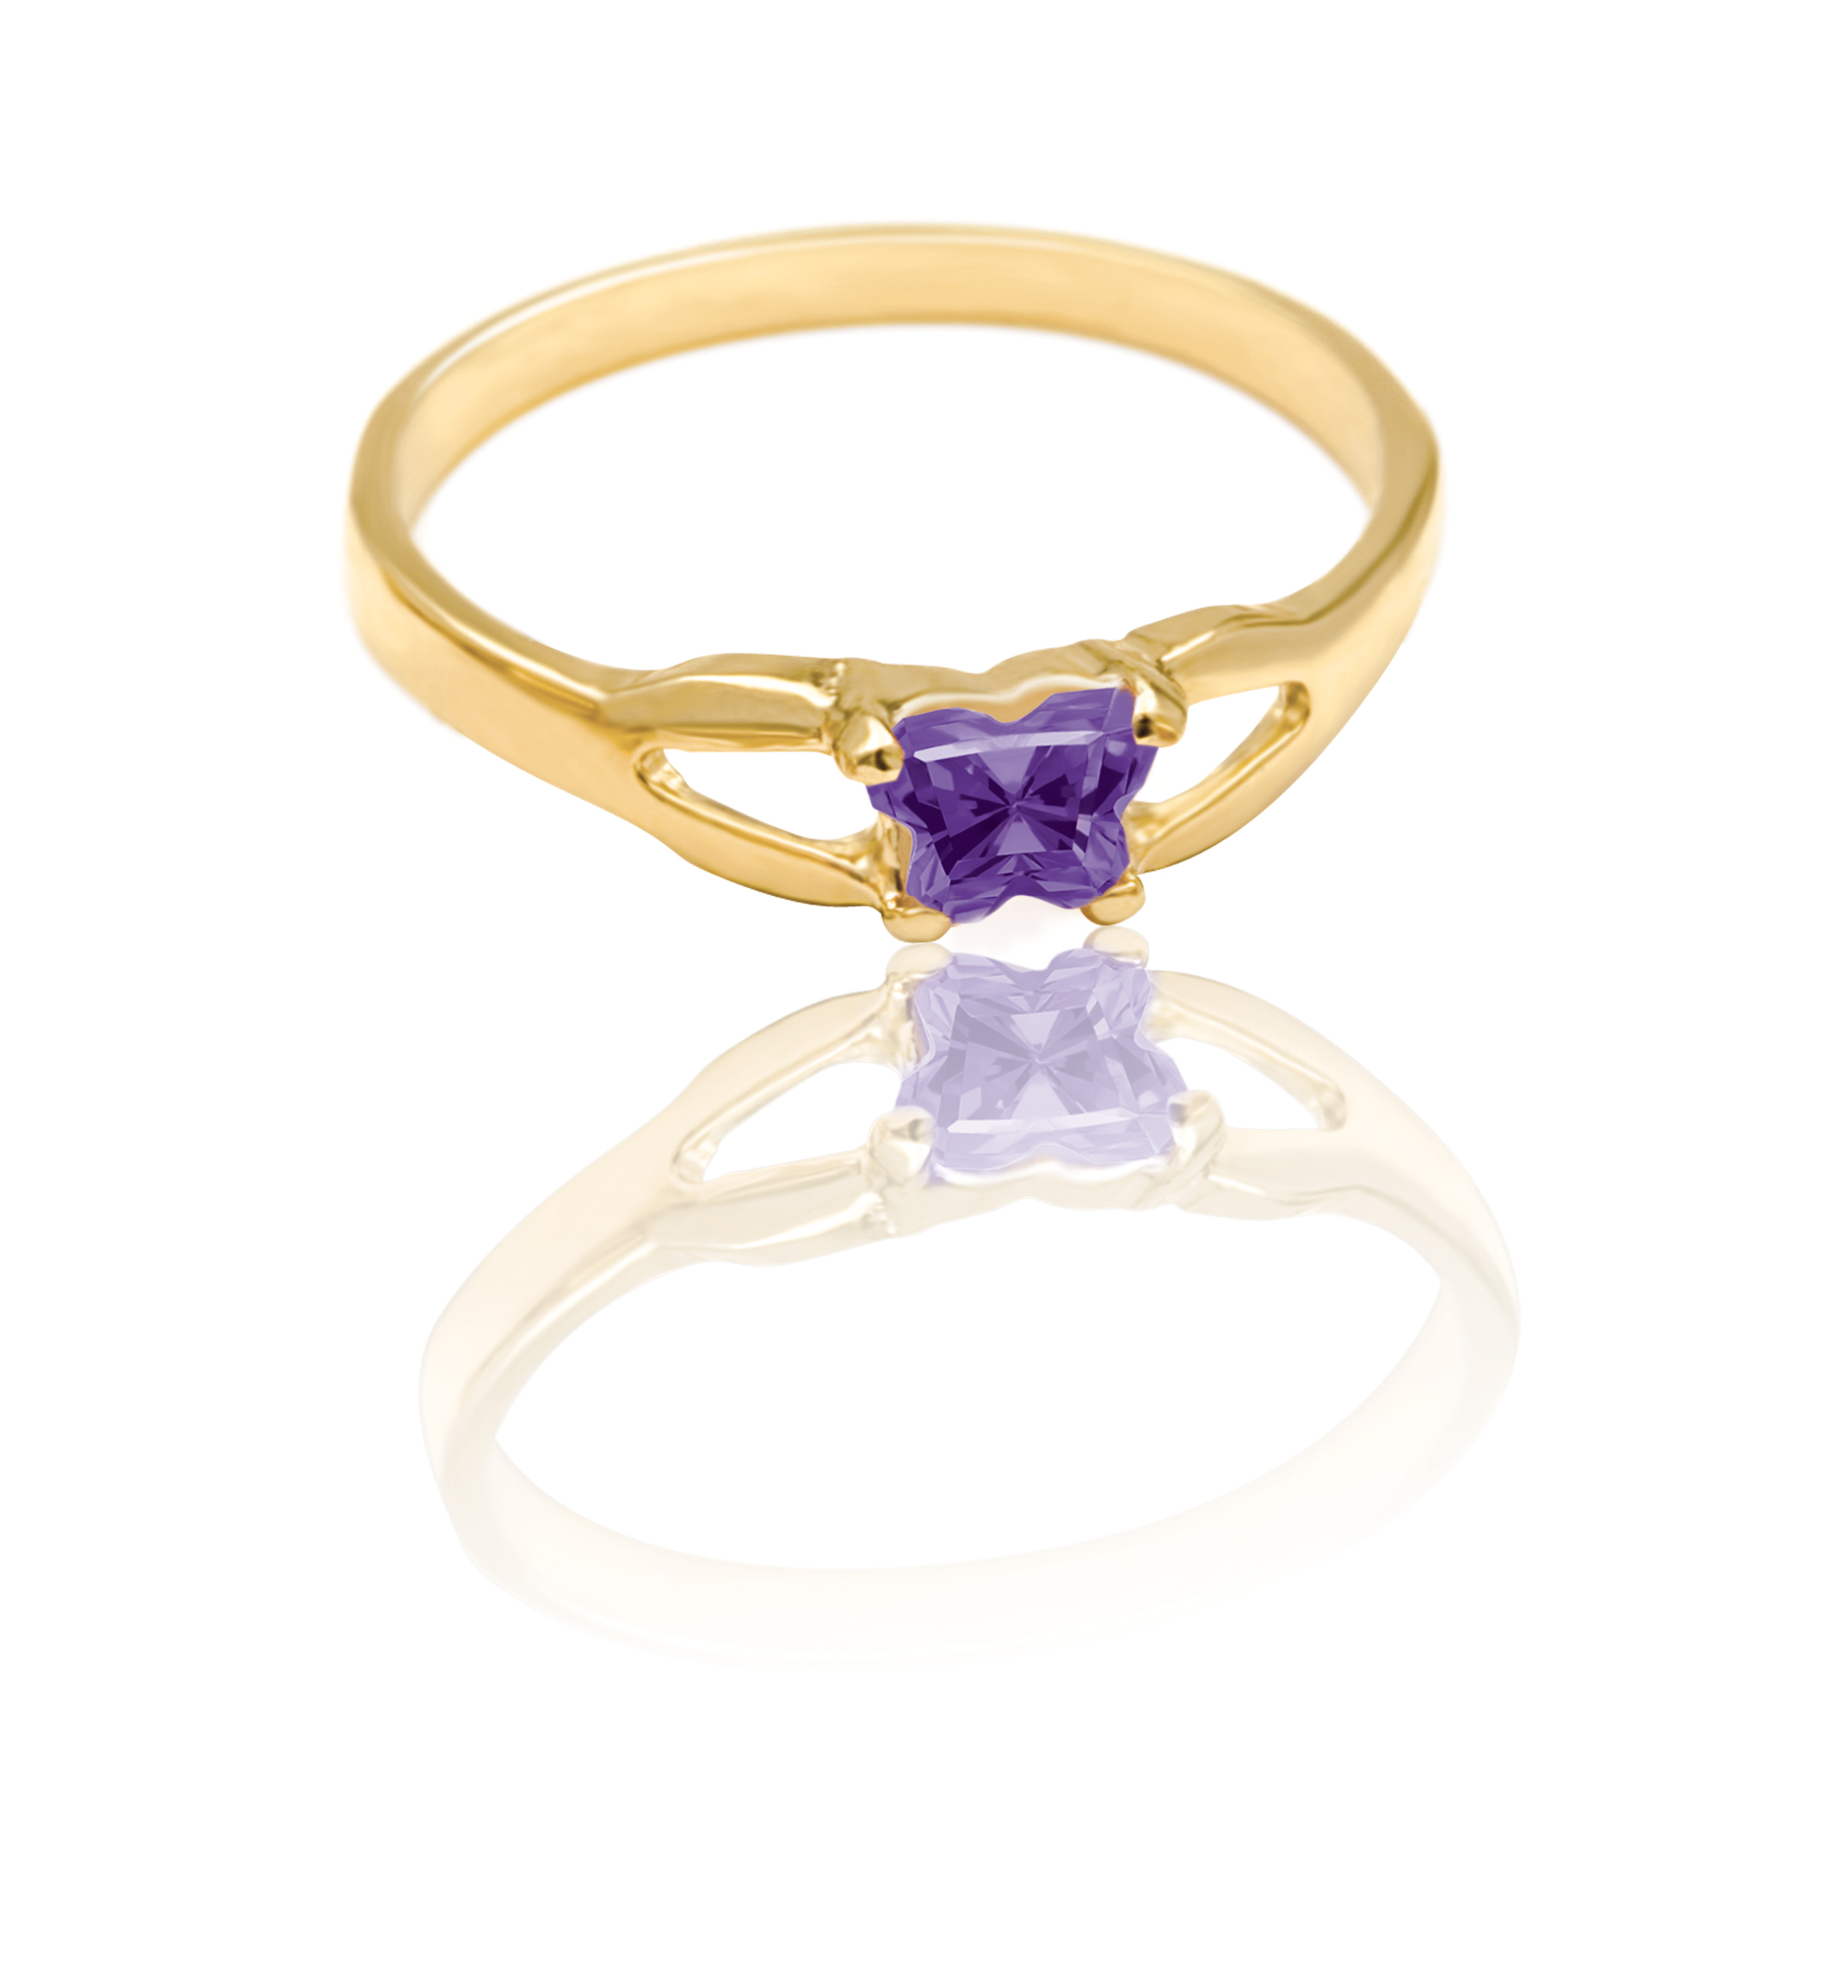 ring for child - 10K yellow Gold & Purple cubic zirconia (month of February)*